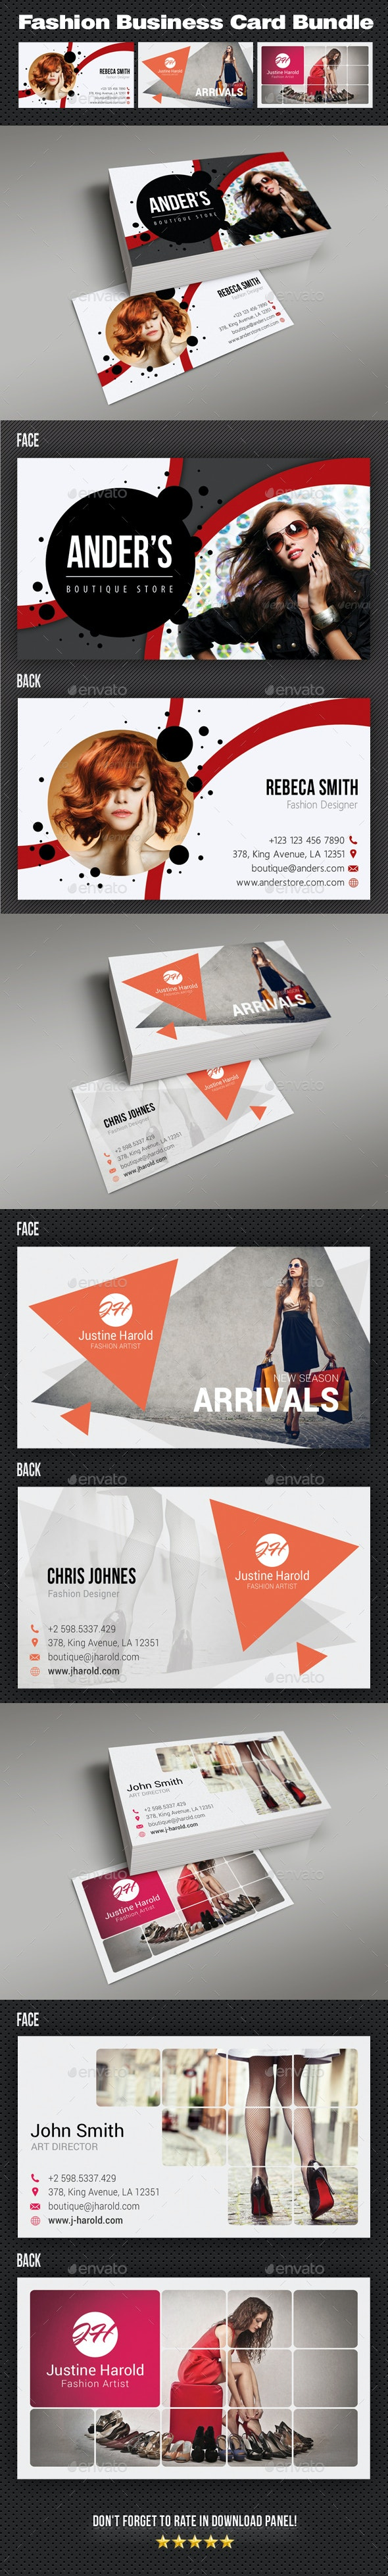 Fashion Business Card Bundle - Creative Business Cards